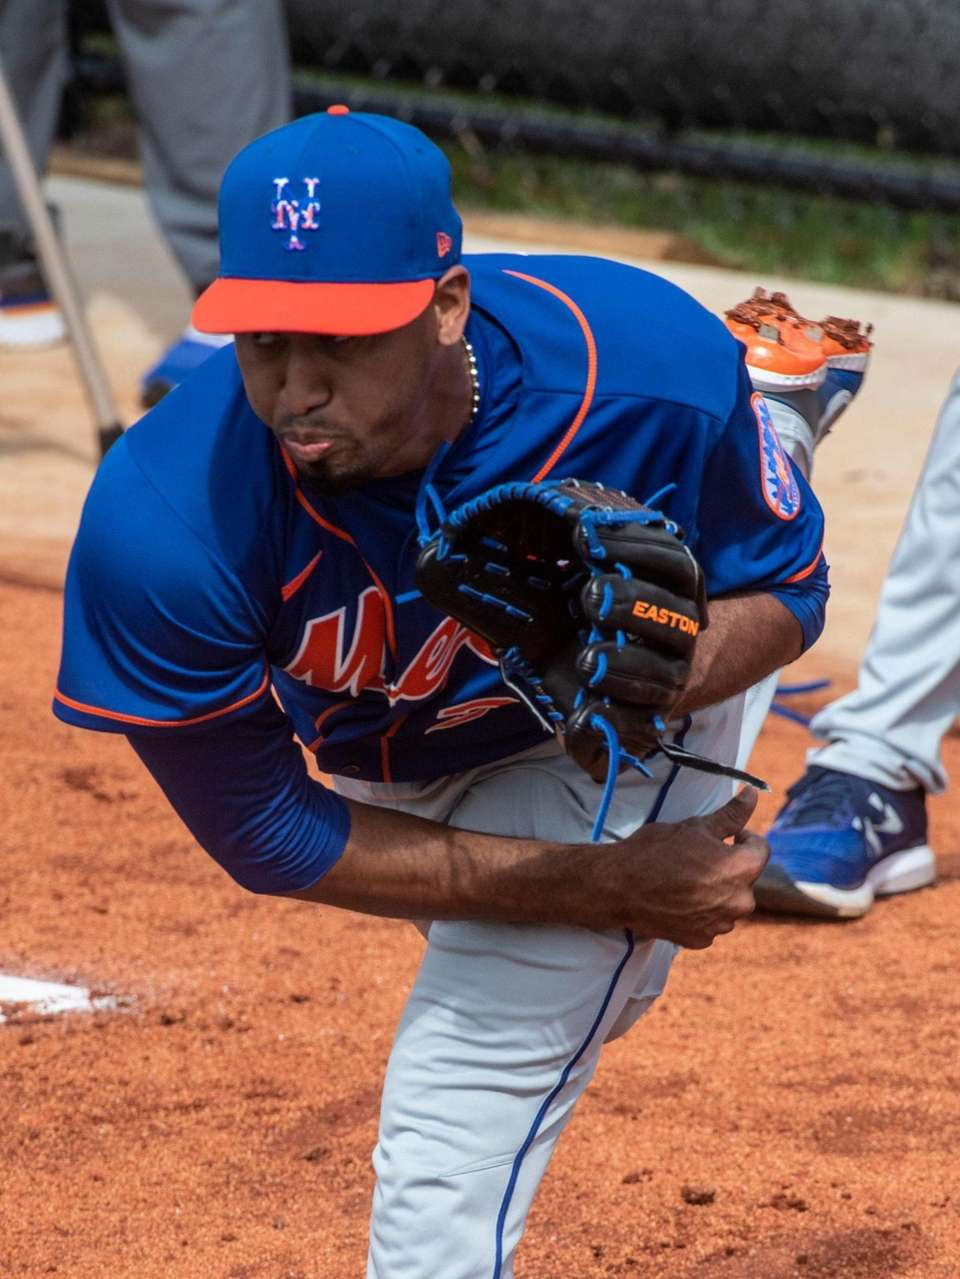 New York Mets pitcher Edwin Diaz throws a